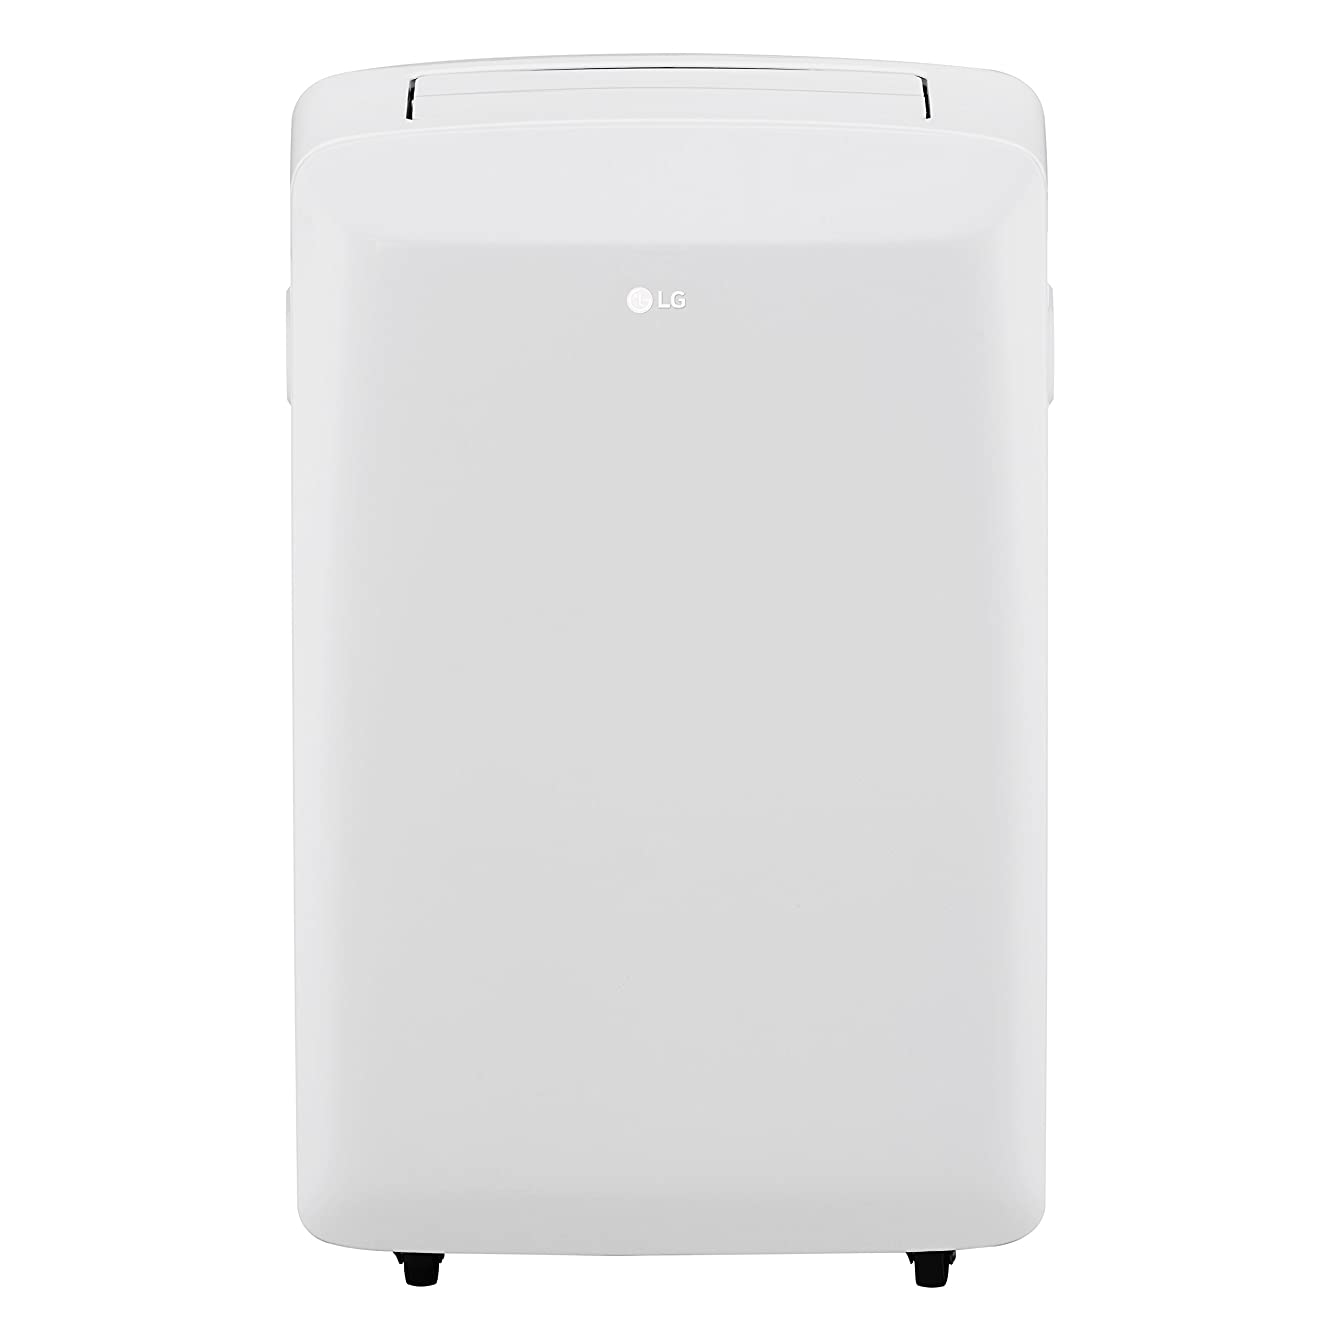 LG LP0817WSR 115V Portable Air Conditioner with Remote Control in White for Rooms up to 150-Sq. Ft. iywmmbkteptno40